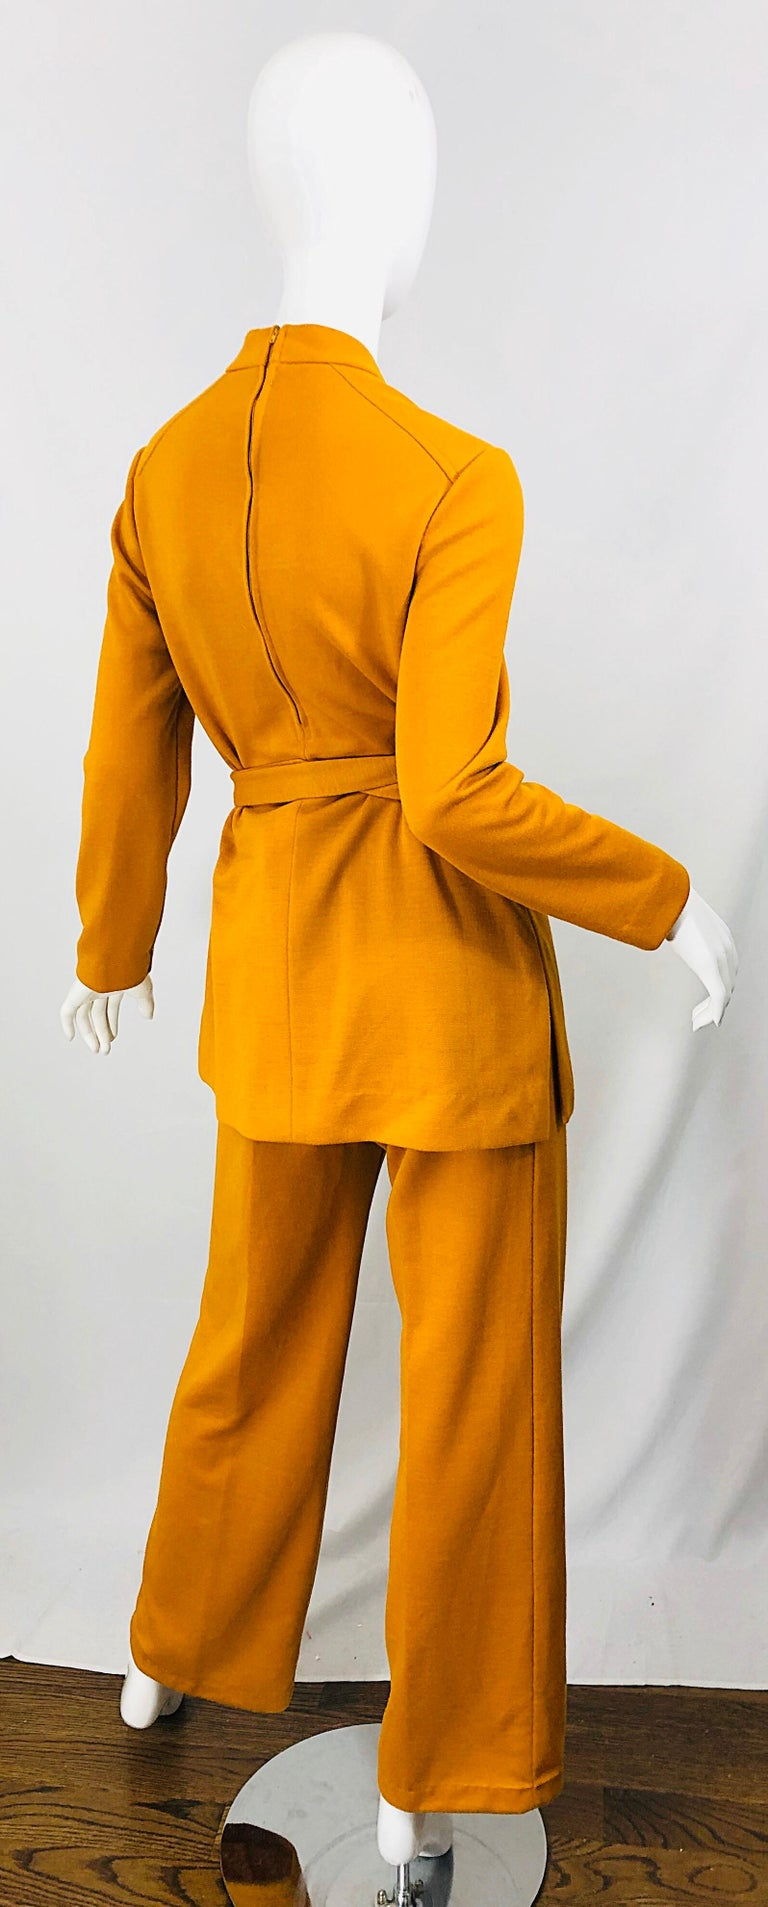 Women's 1970s Marigold Mustard Yellow Four Piece Vintage 70s Knit Shirt + Pants + Belt For Sale